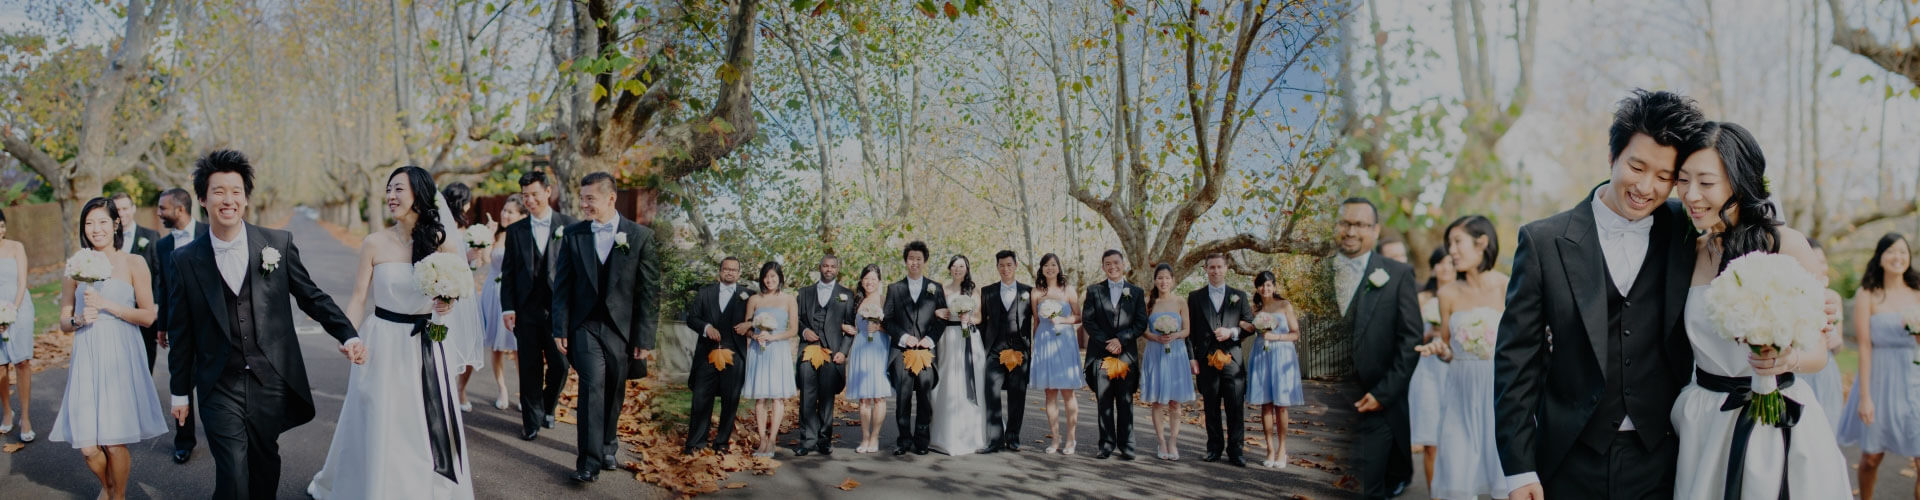 Diverse Ways to Make Your Wedding Video Extra Special